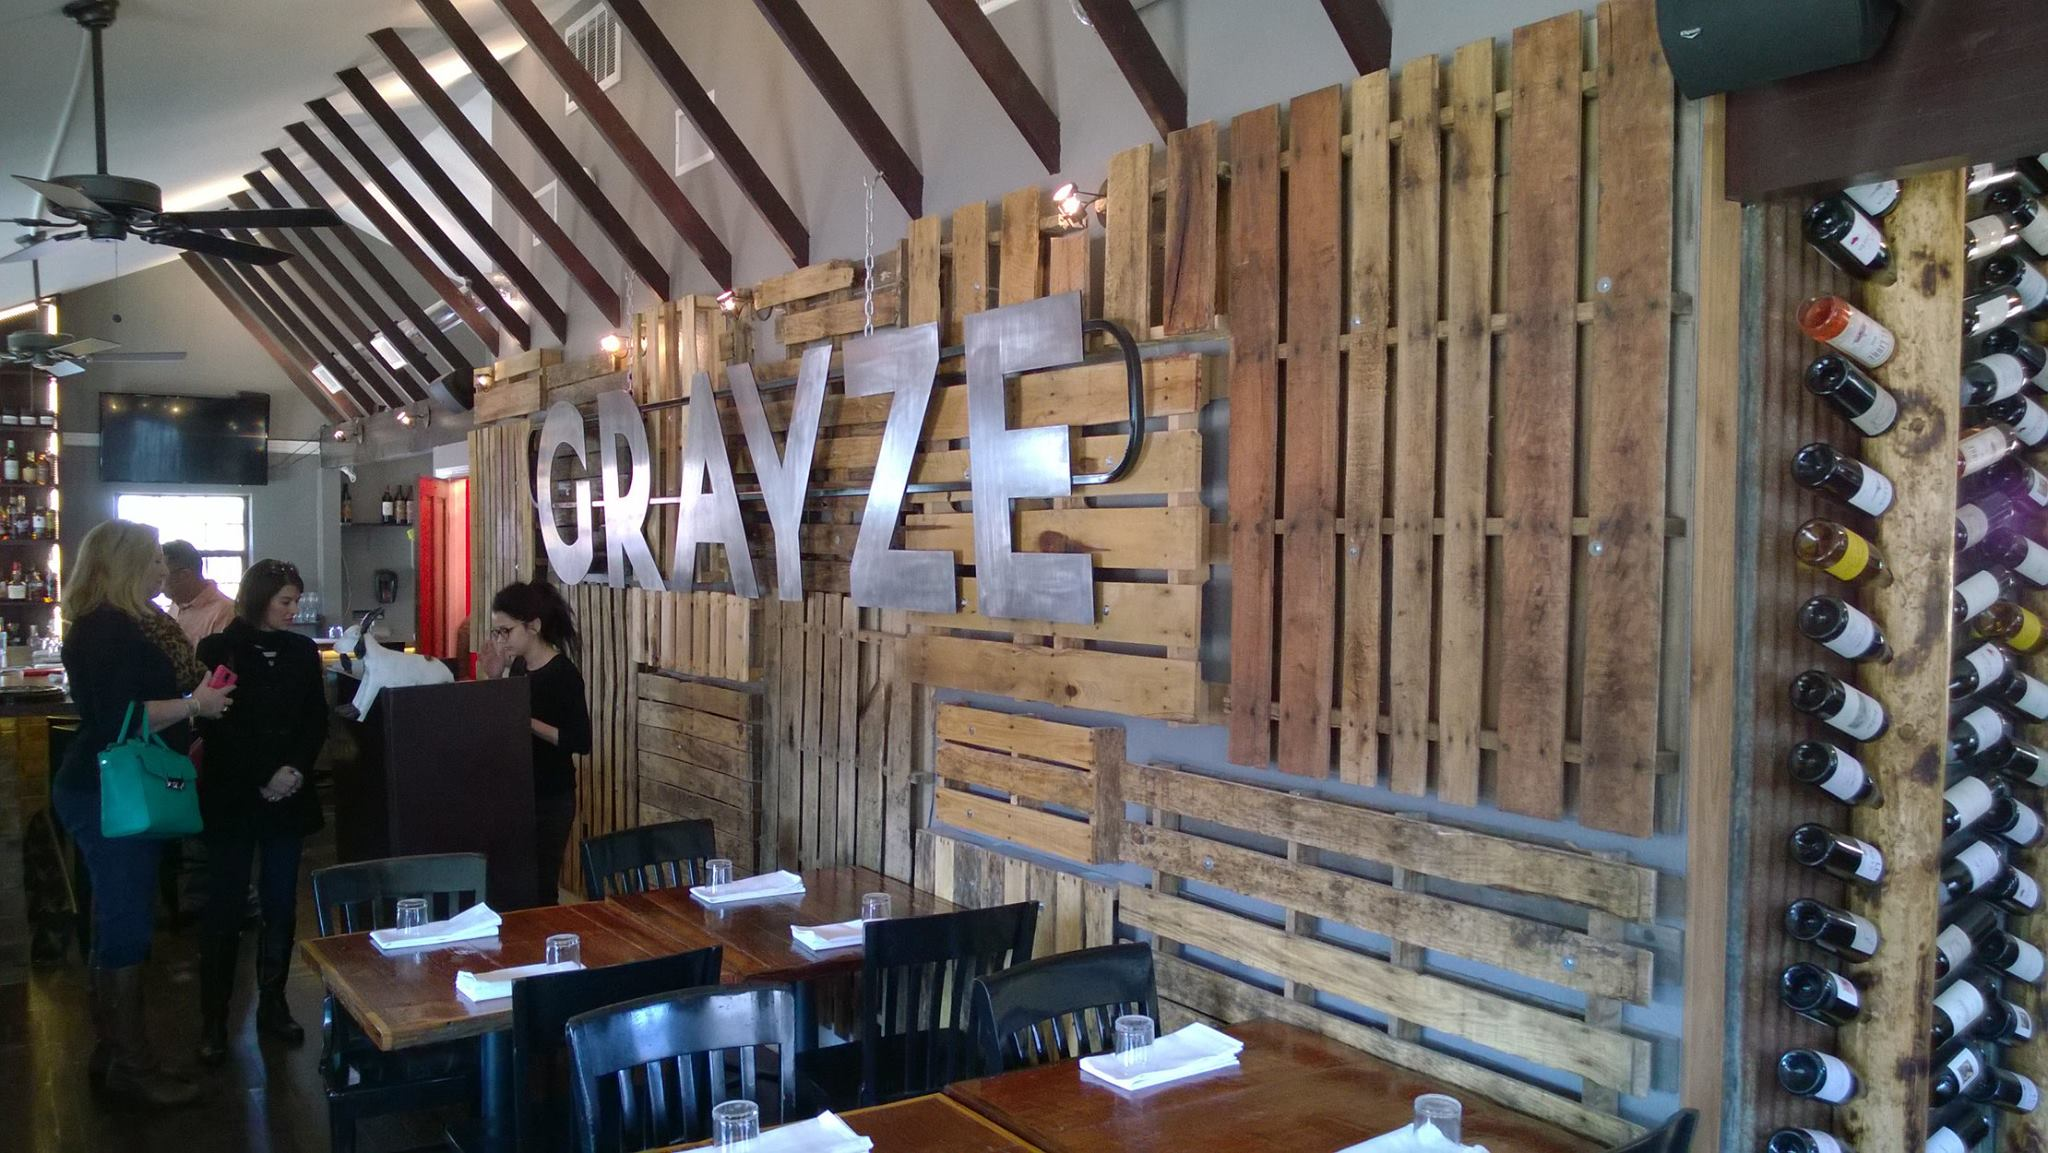 Share My Space At Grayze With Condition: Restaurant, San Antonio, Bridal  Shower,